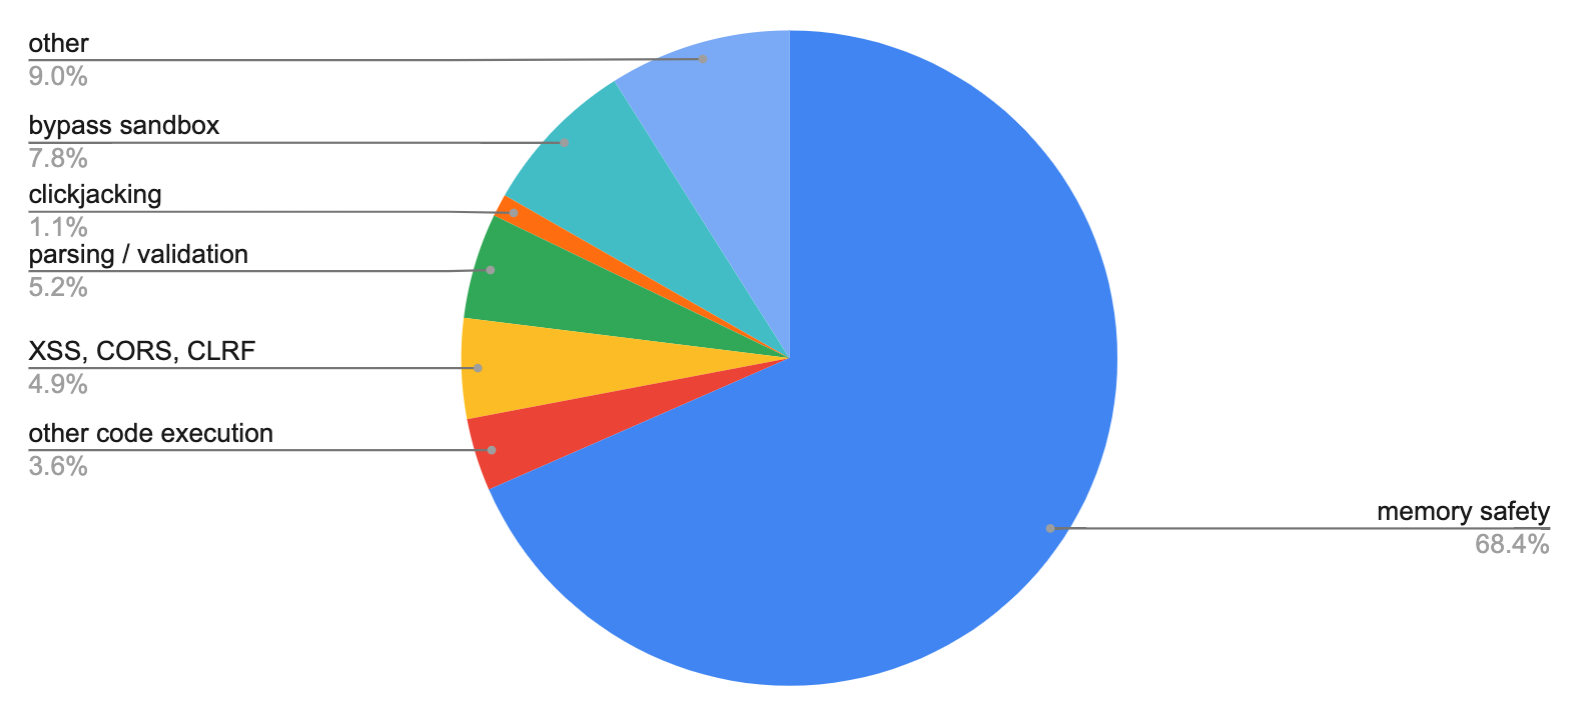 pie chart illustrating data in table below